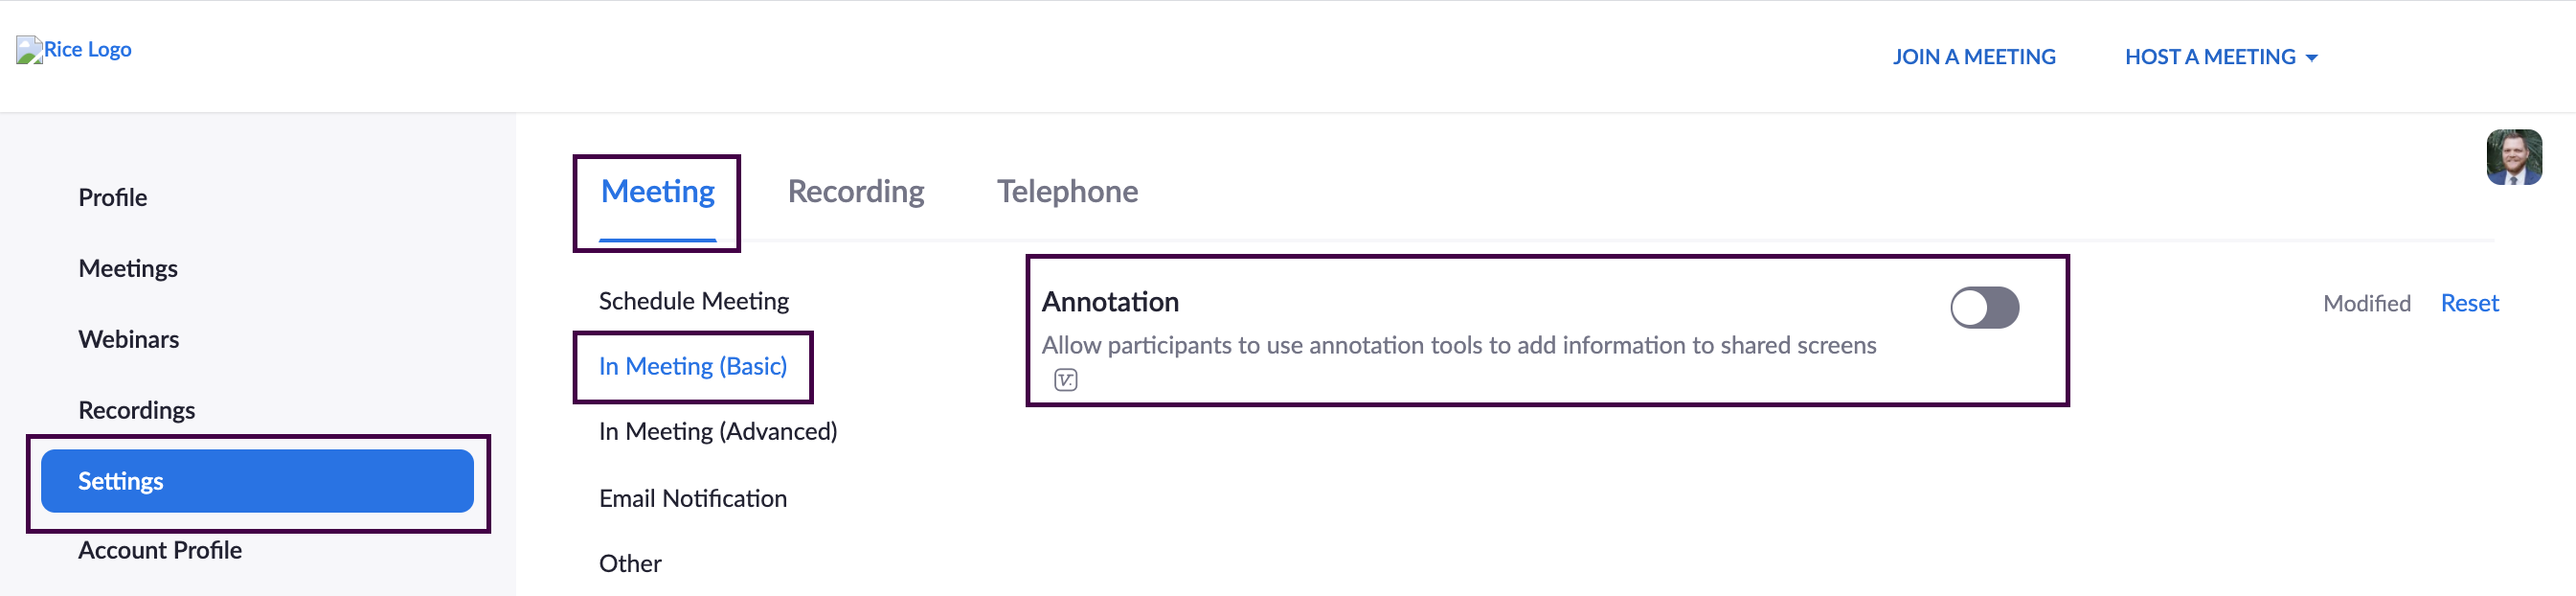 Zoom meeting settings with 'Annotation' disabled.